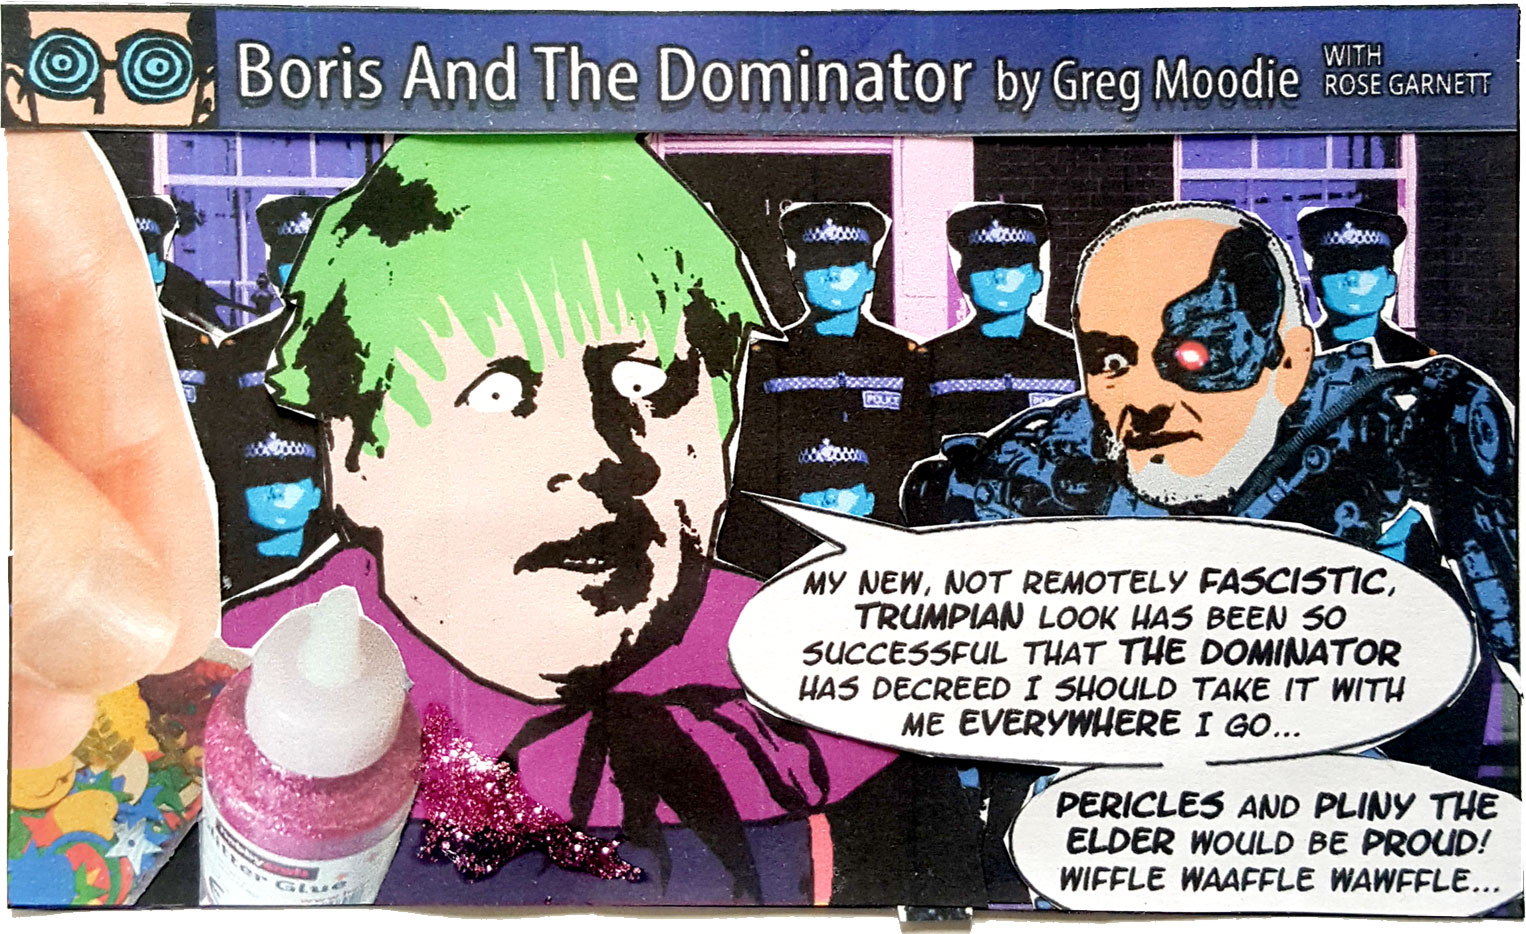 Boris And The Dominator